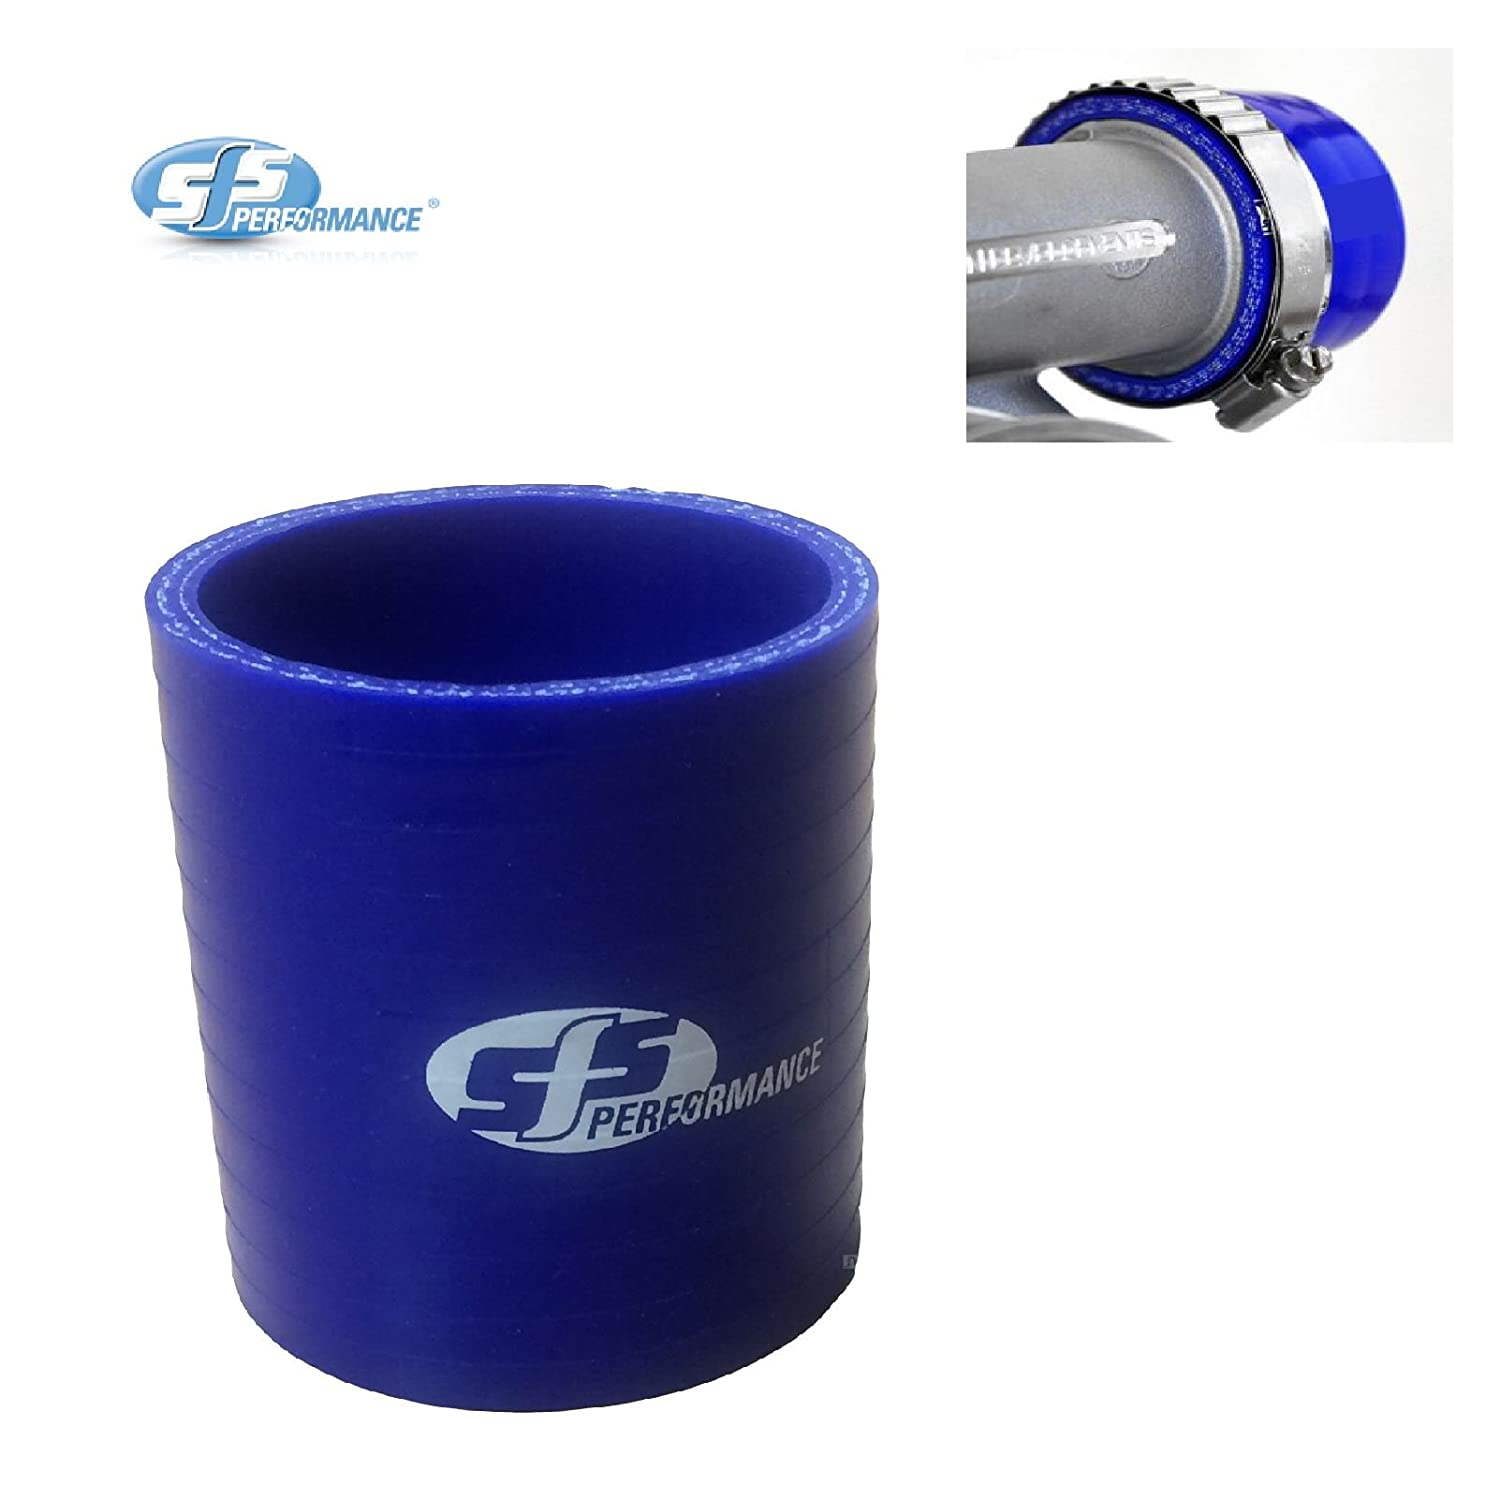 SFS 2.5' Blue Silicone Straight Coupling Connector 63mm Turbo Intercooler Hose